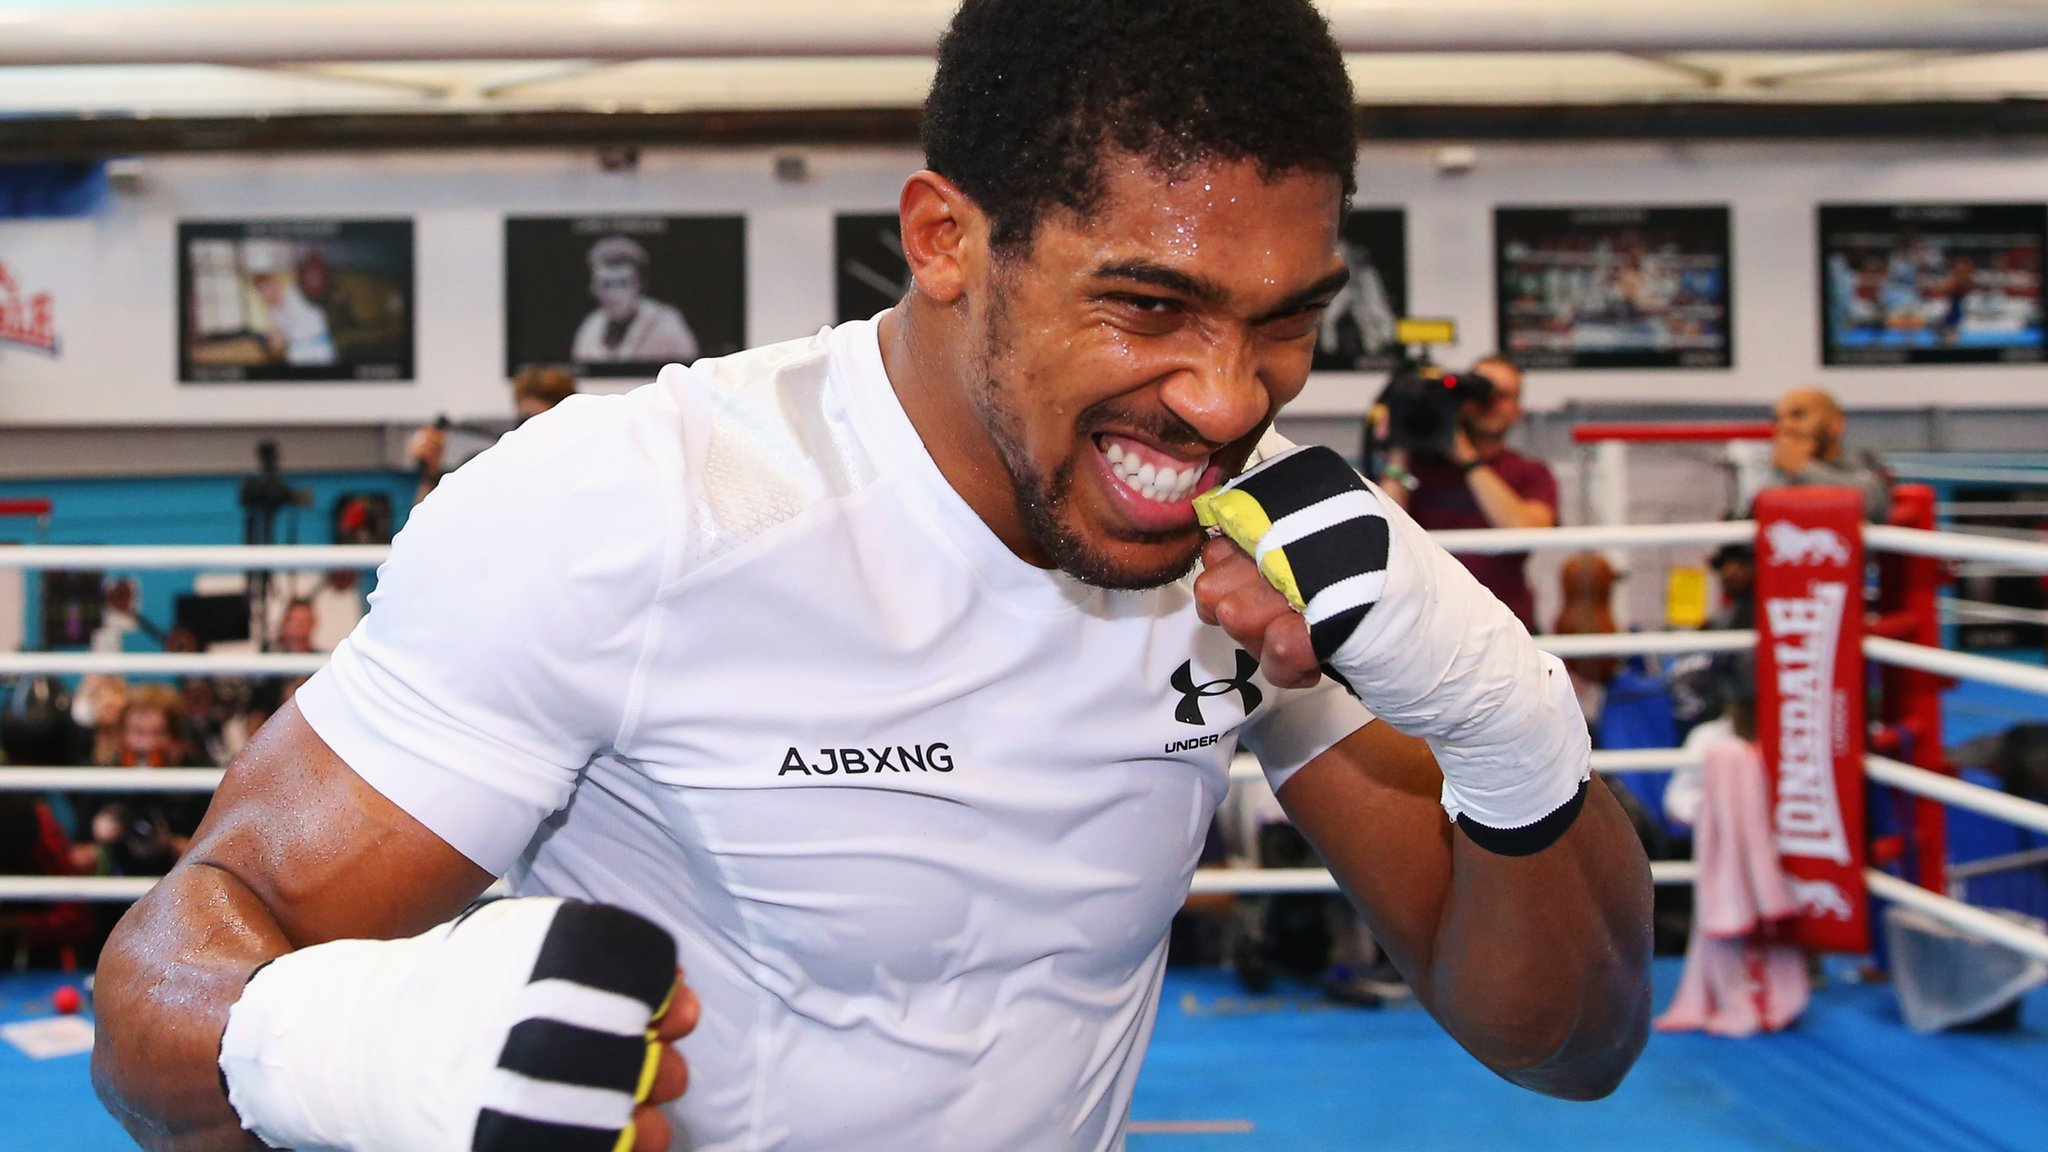 'I can't please everyone anymore' - Joshua won't let critics 'drain' him